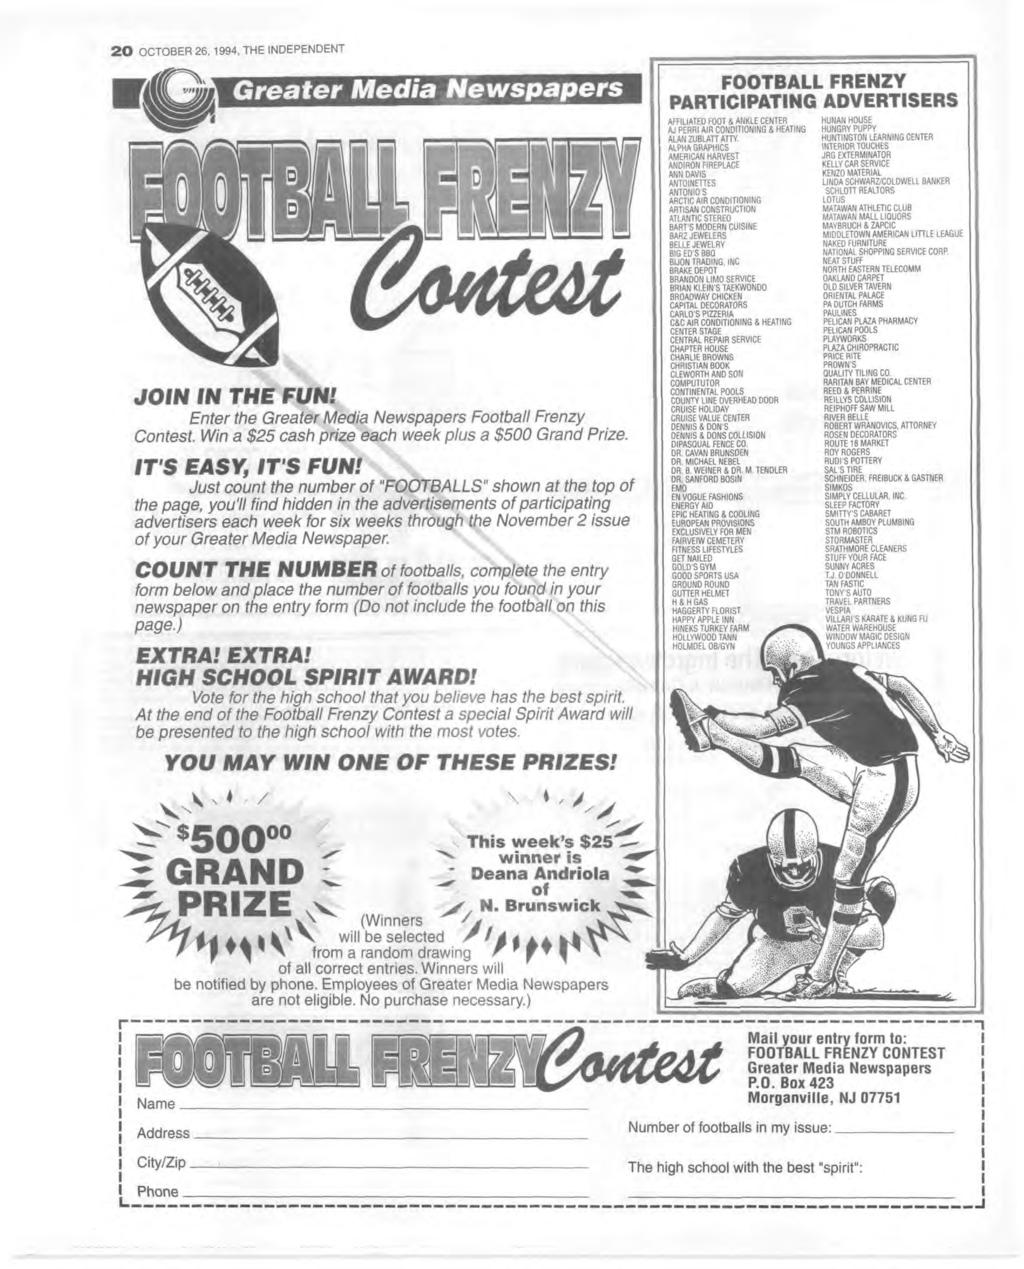 2 0 OCTOBER 26, 1994, THE NDEPENDENT Greater Media Newspapers JON N THE FUN! E nter the G reater M edia N ew spapers Football Frenzy C ontest.